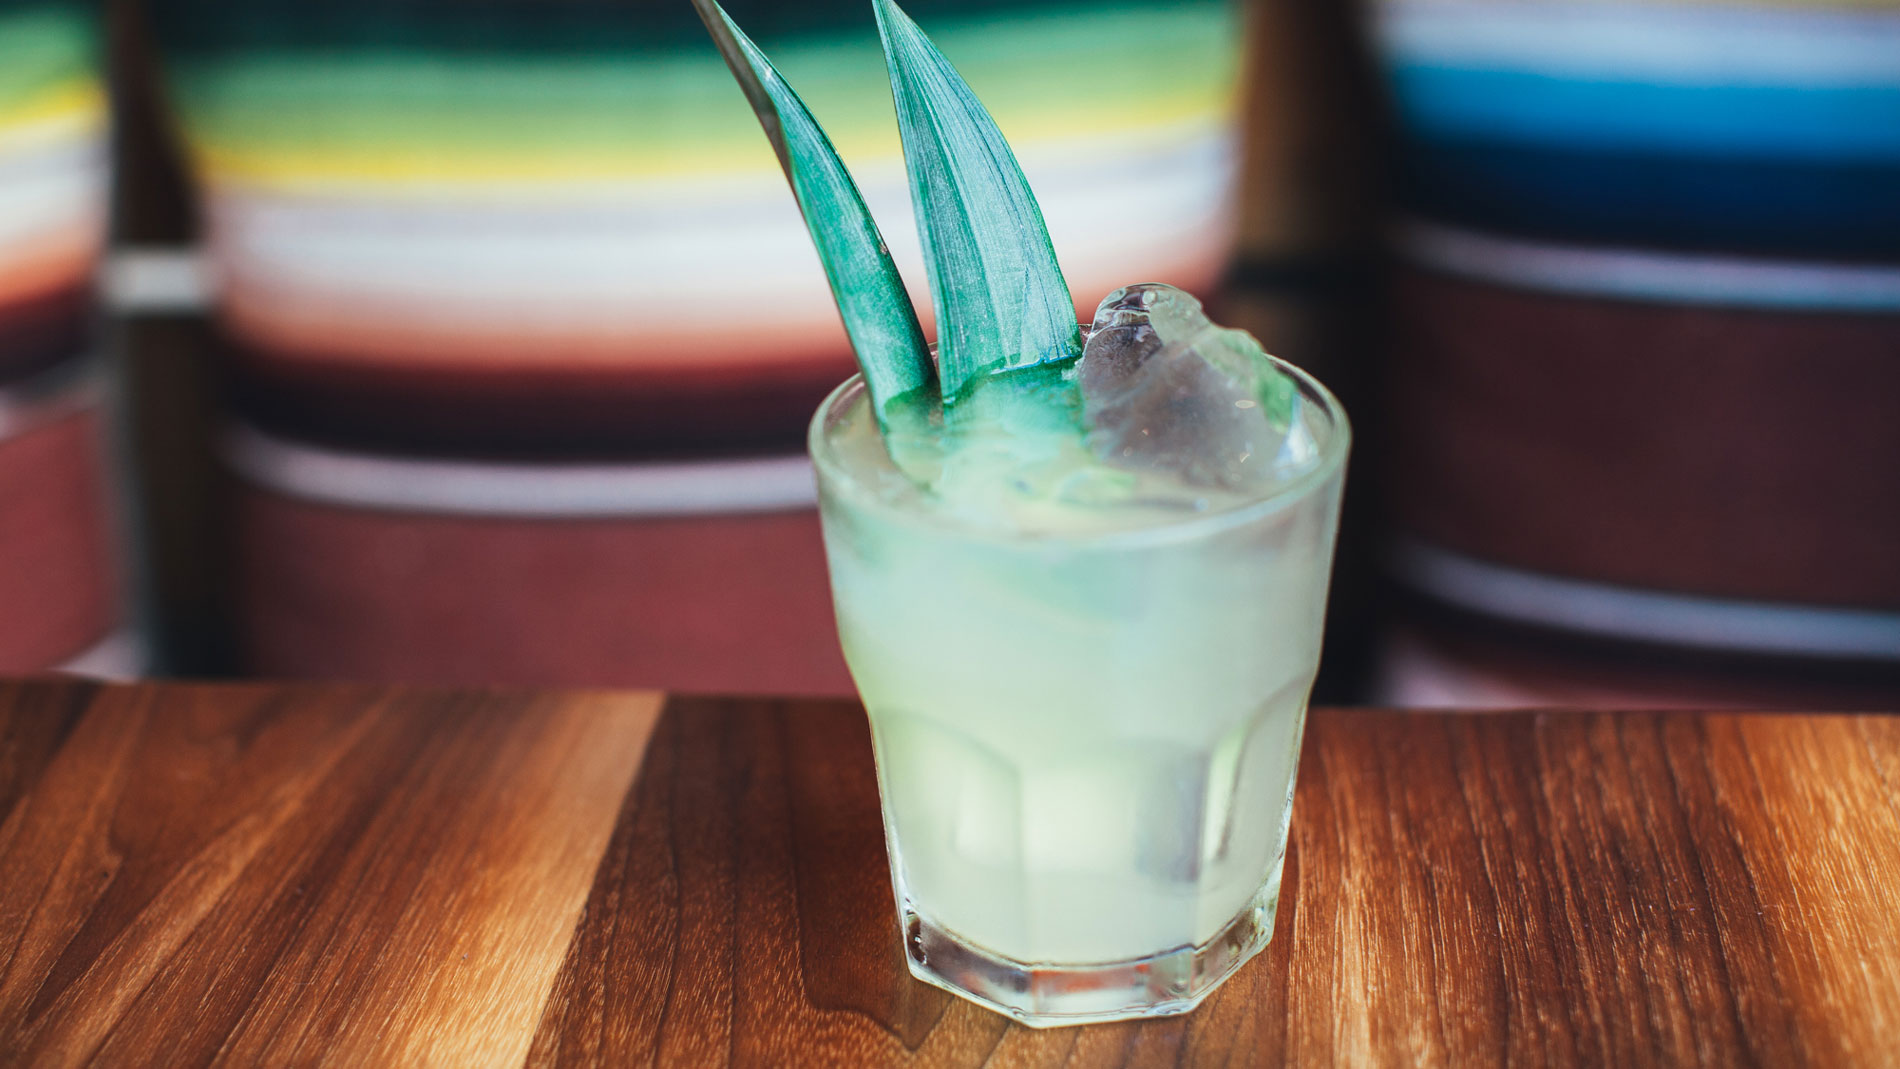 Where to Drink Tequila and Mezcal in L.A.